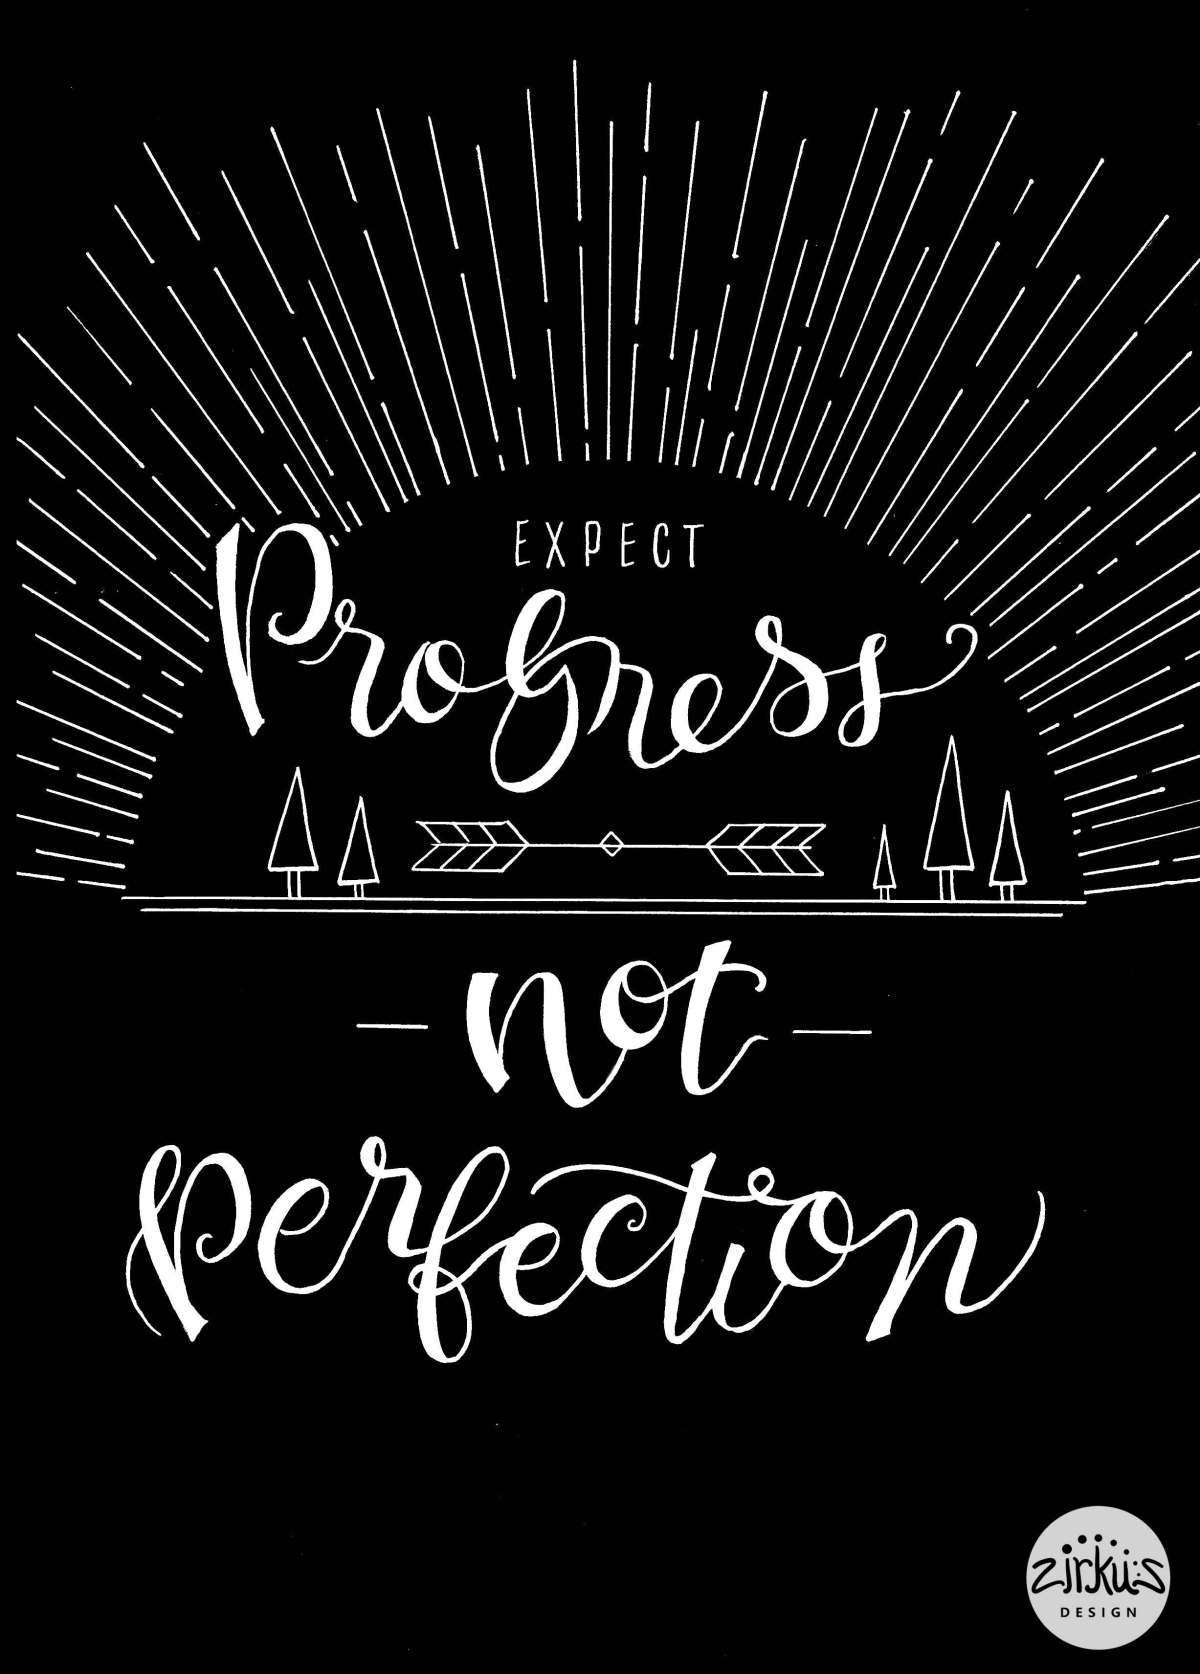 Zirkus Design | Expect Progress Not Perfection Inverse | Hand Lettering + Pen & Ink